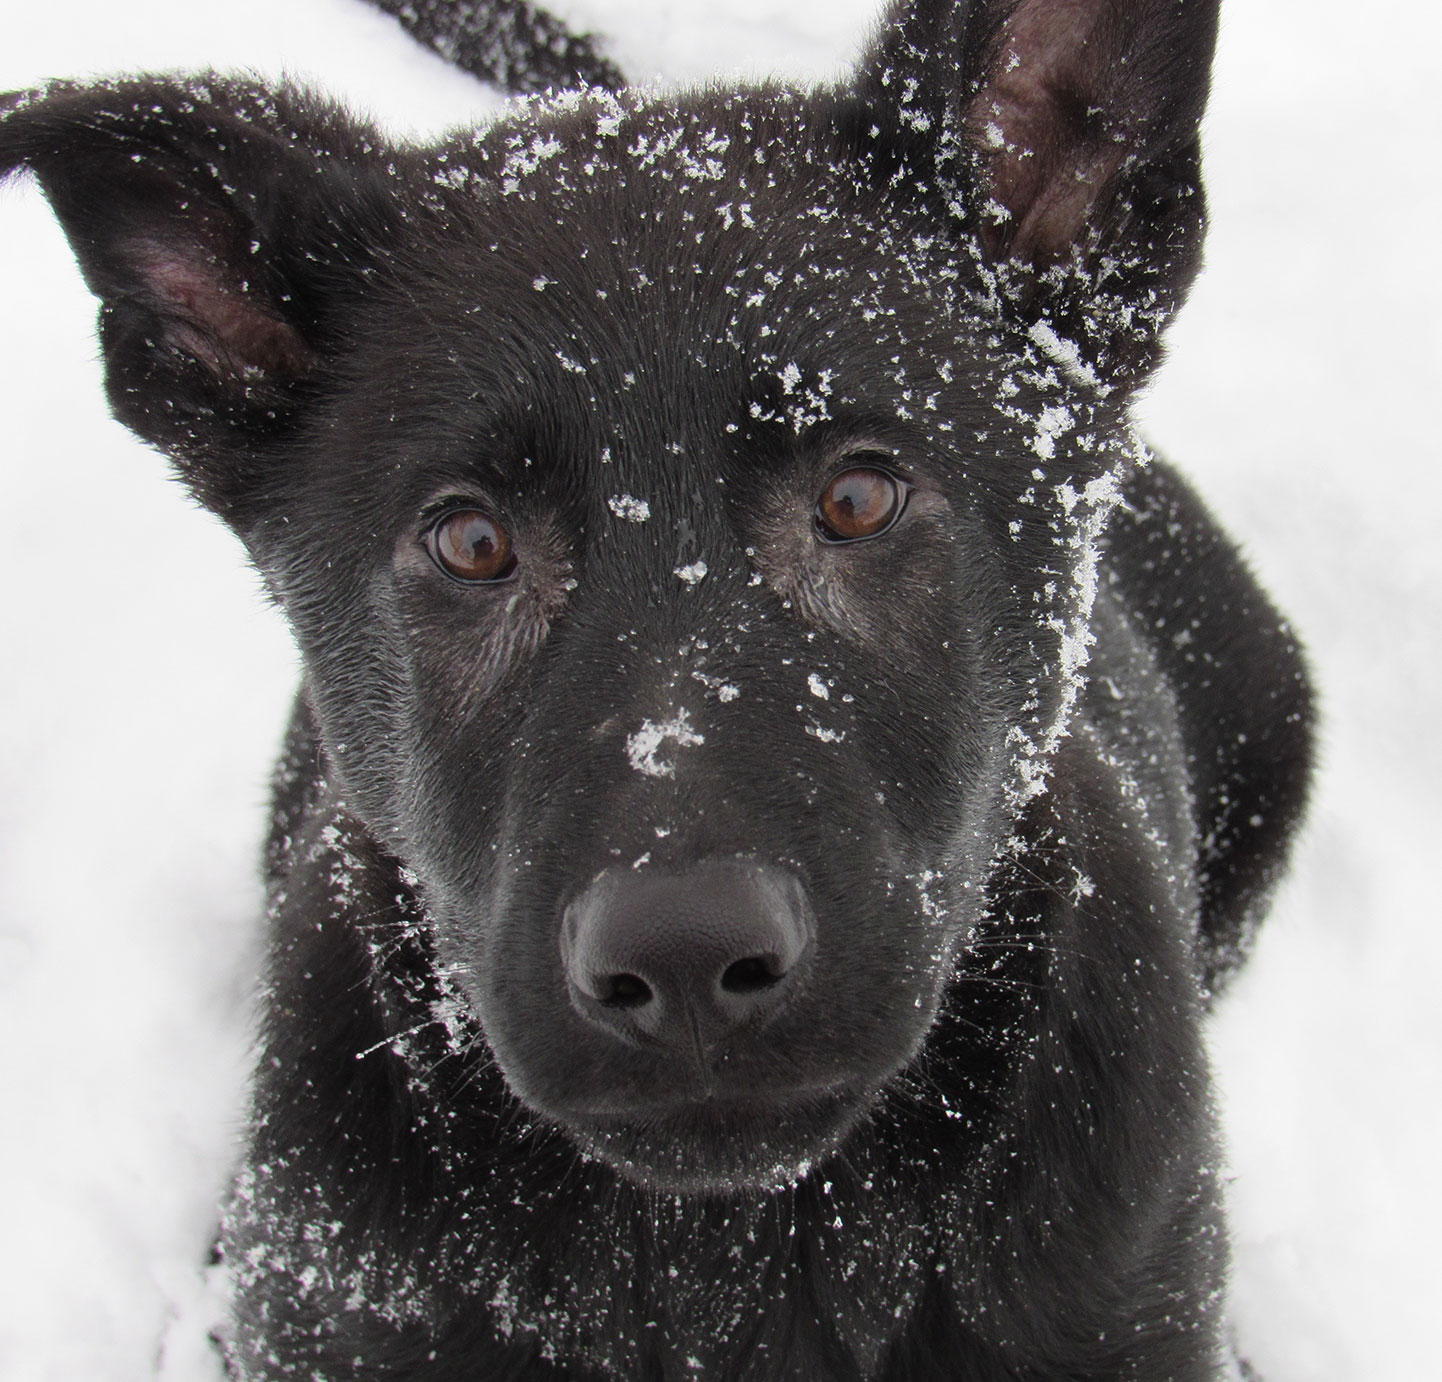 Luger-closeup-in-snow-12-4-18